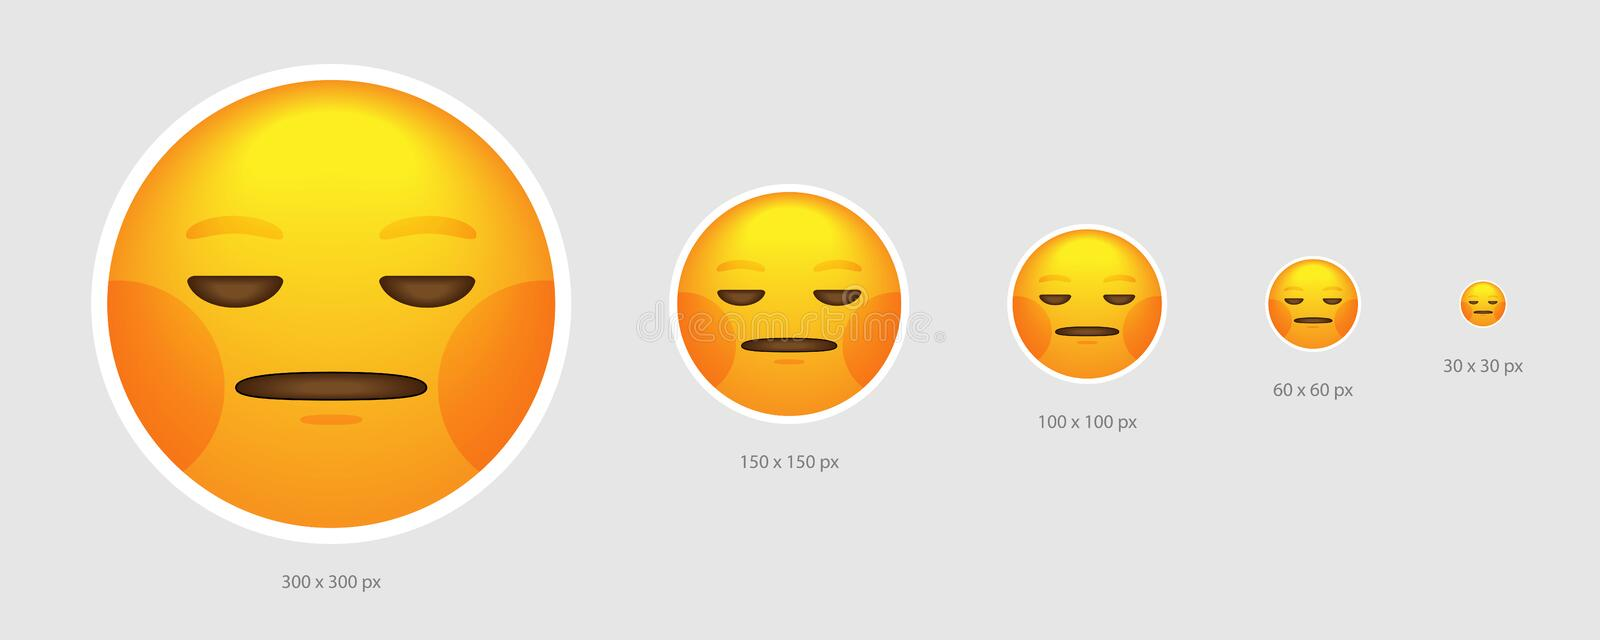 Fronte di emoji di indifferenza illustrazione di stock